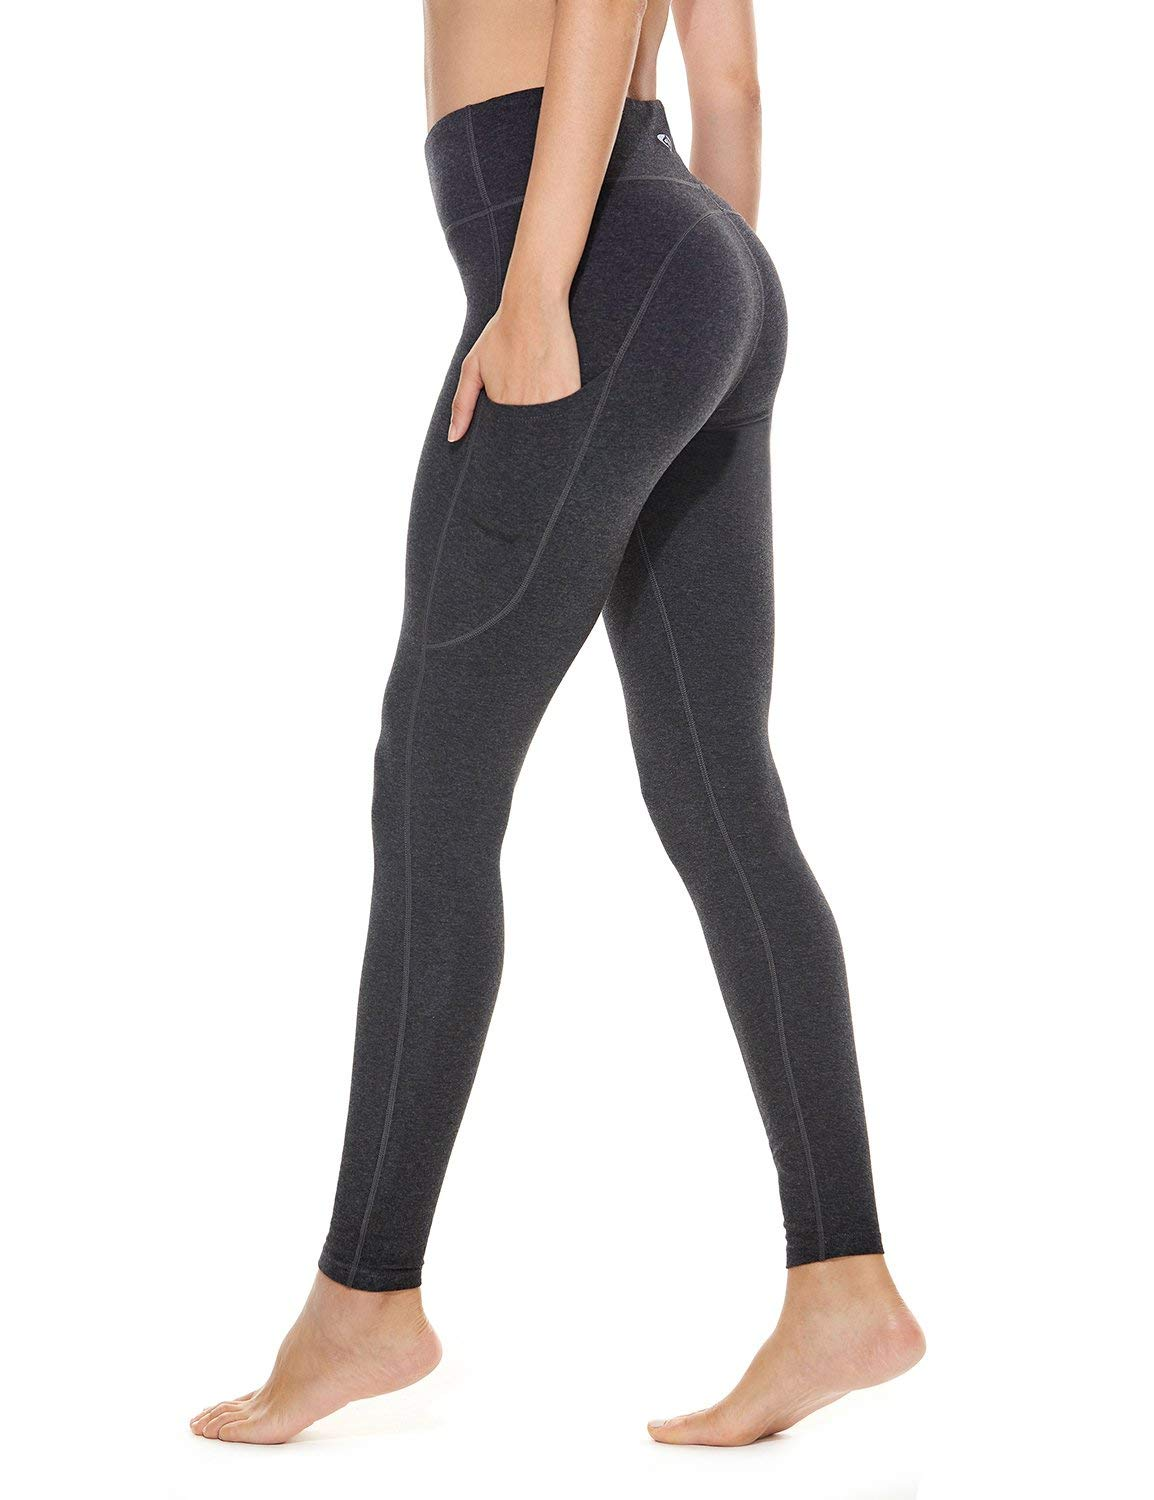 BALEAF Women's High Waisted Yoga Pants Side Pocketed Workout Running Leggings Tummy Control